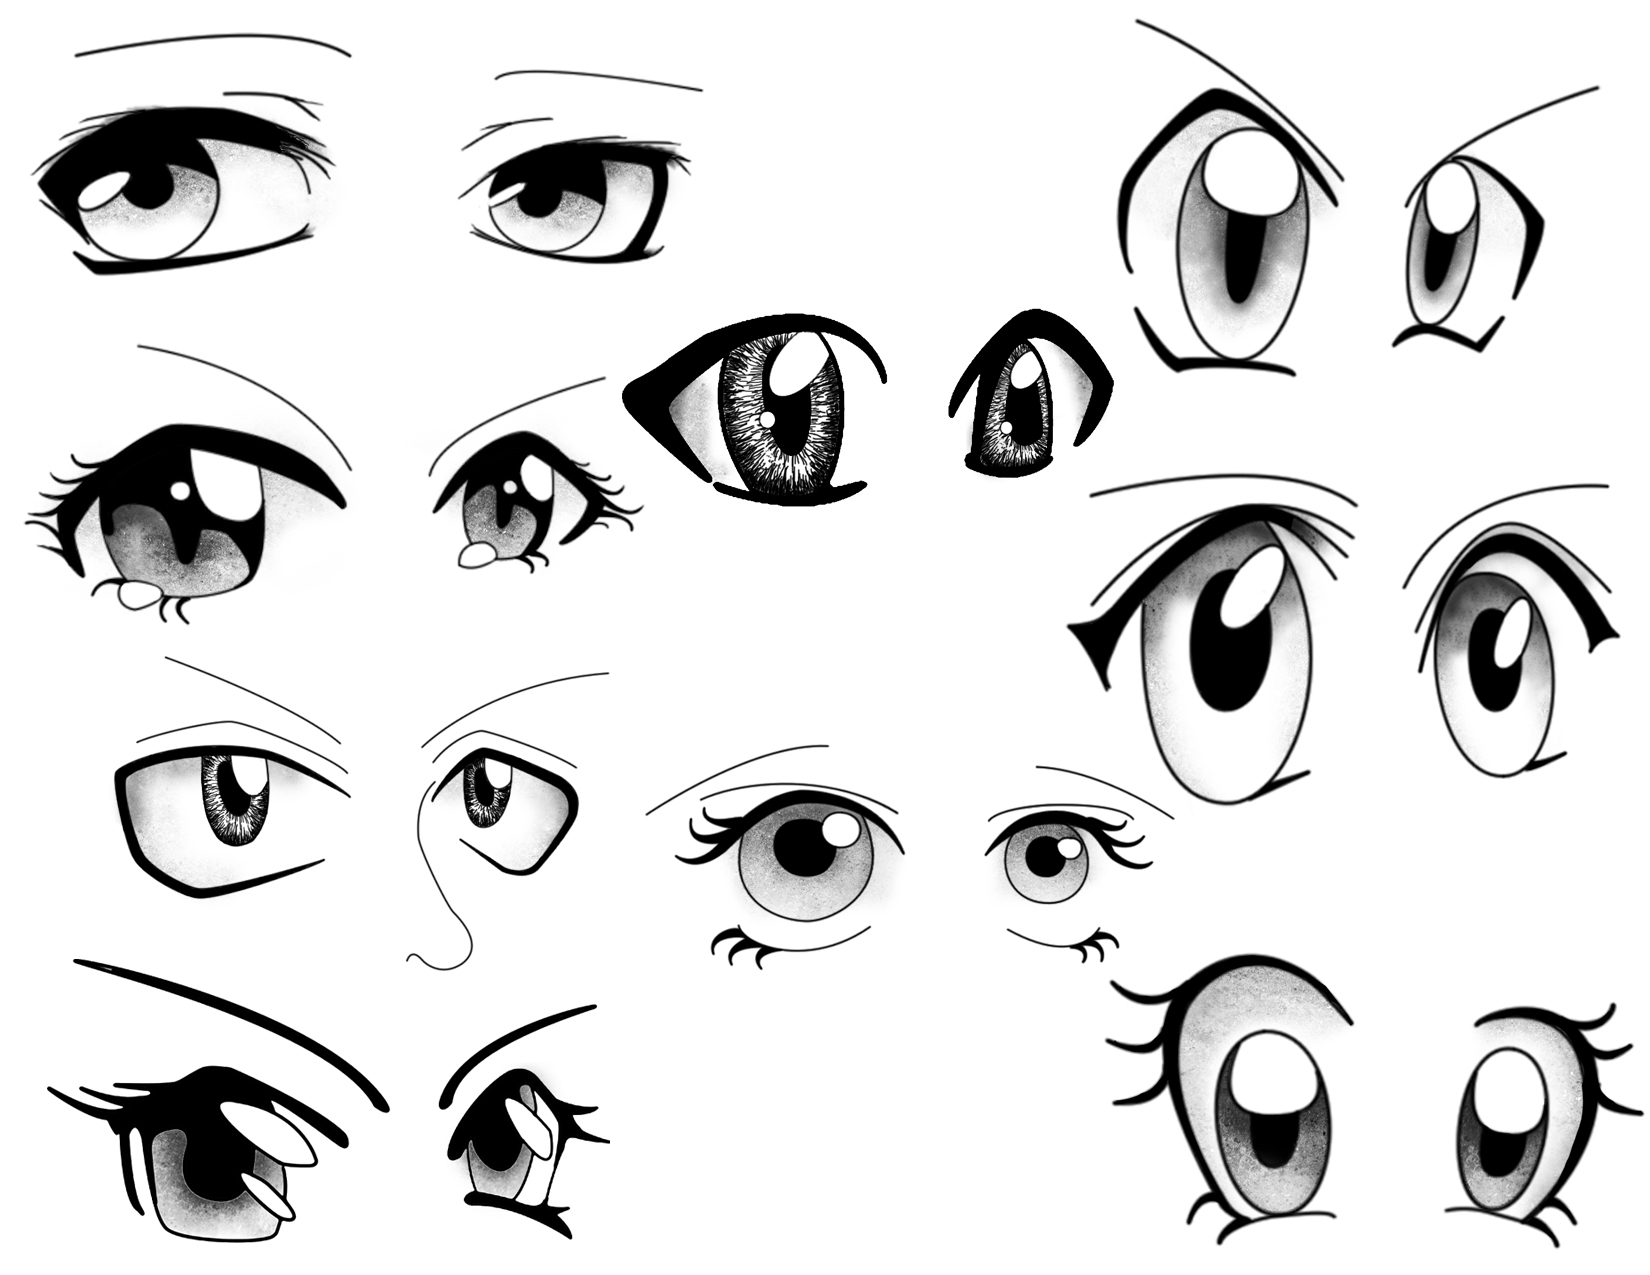 1650x1275 Drawing Cartoon Eyes Cartoon Eyes, Mix And Match To Create Your